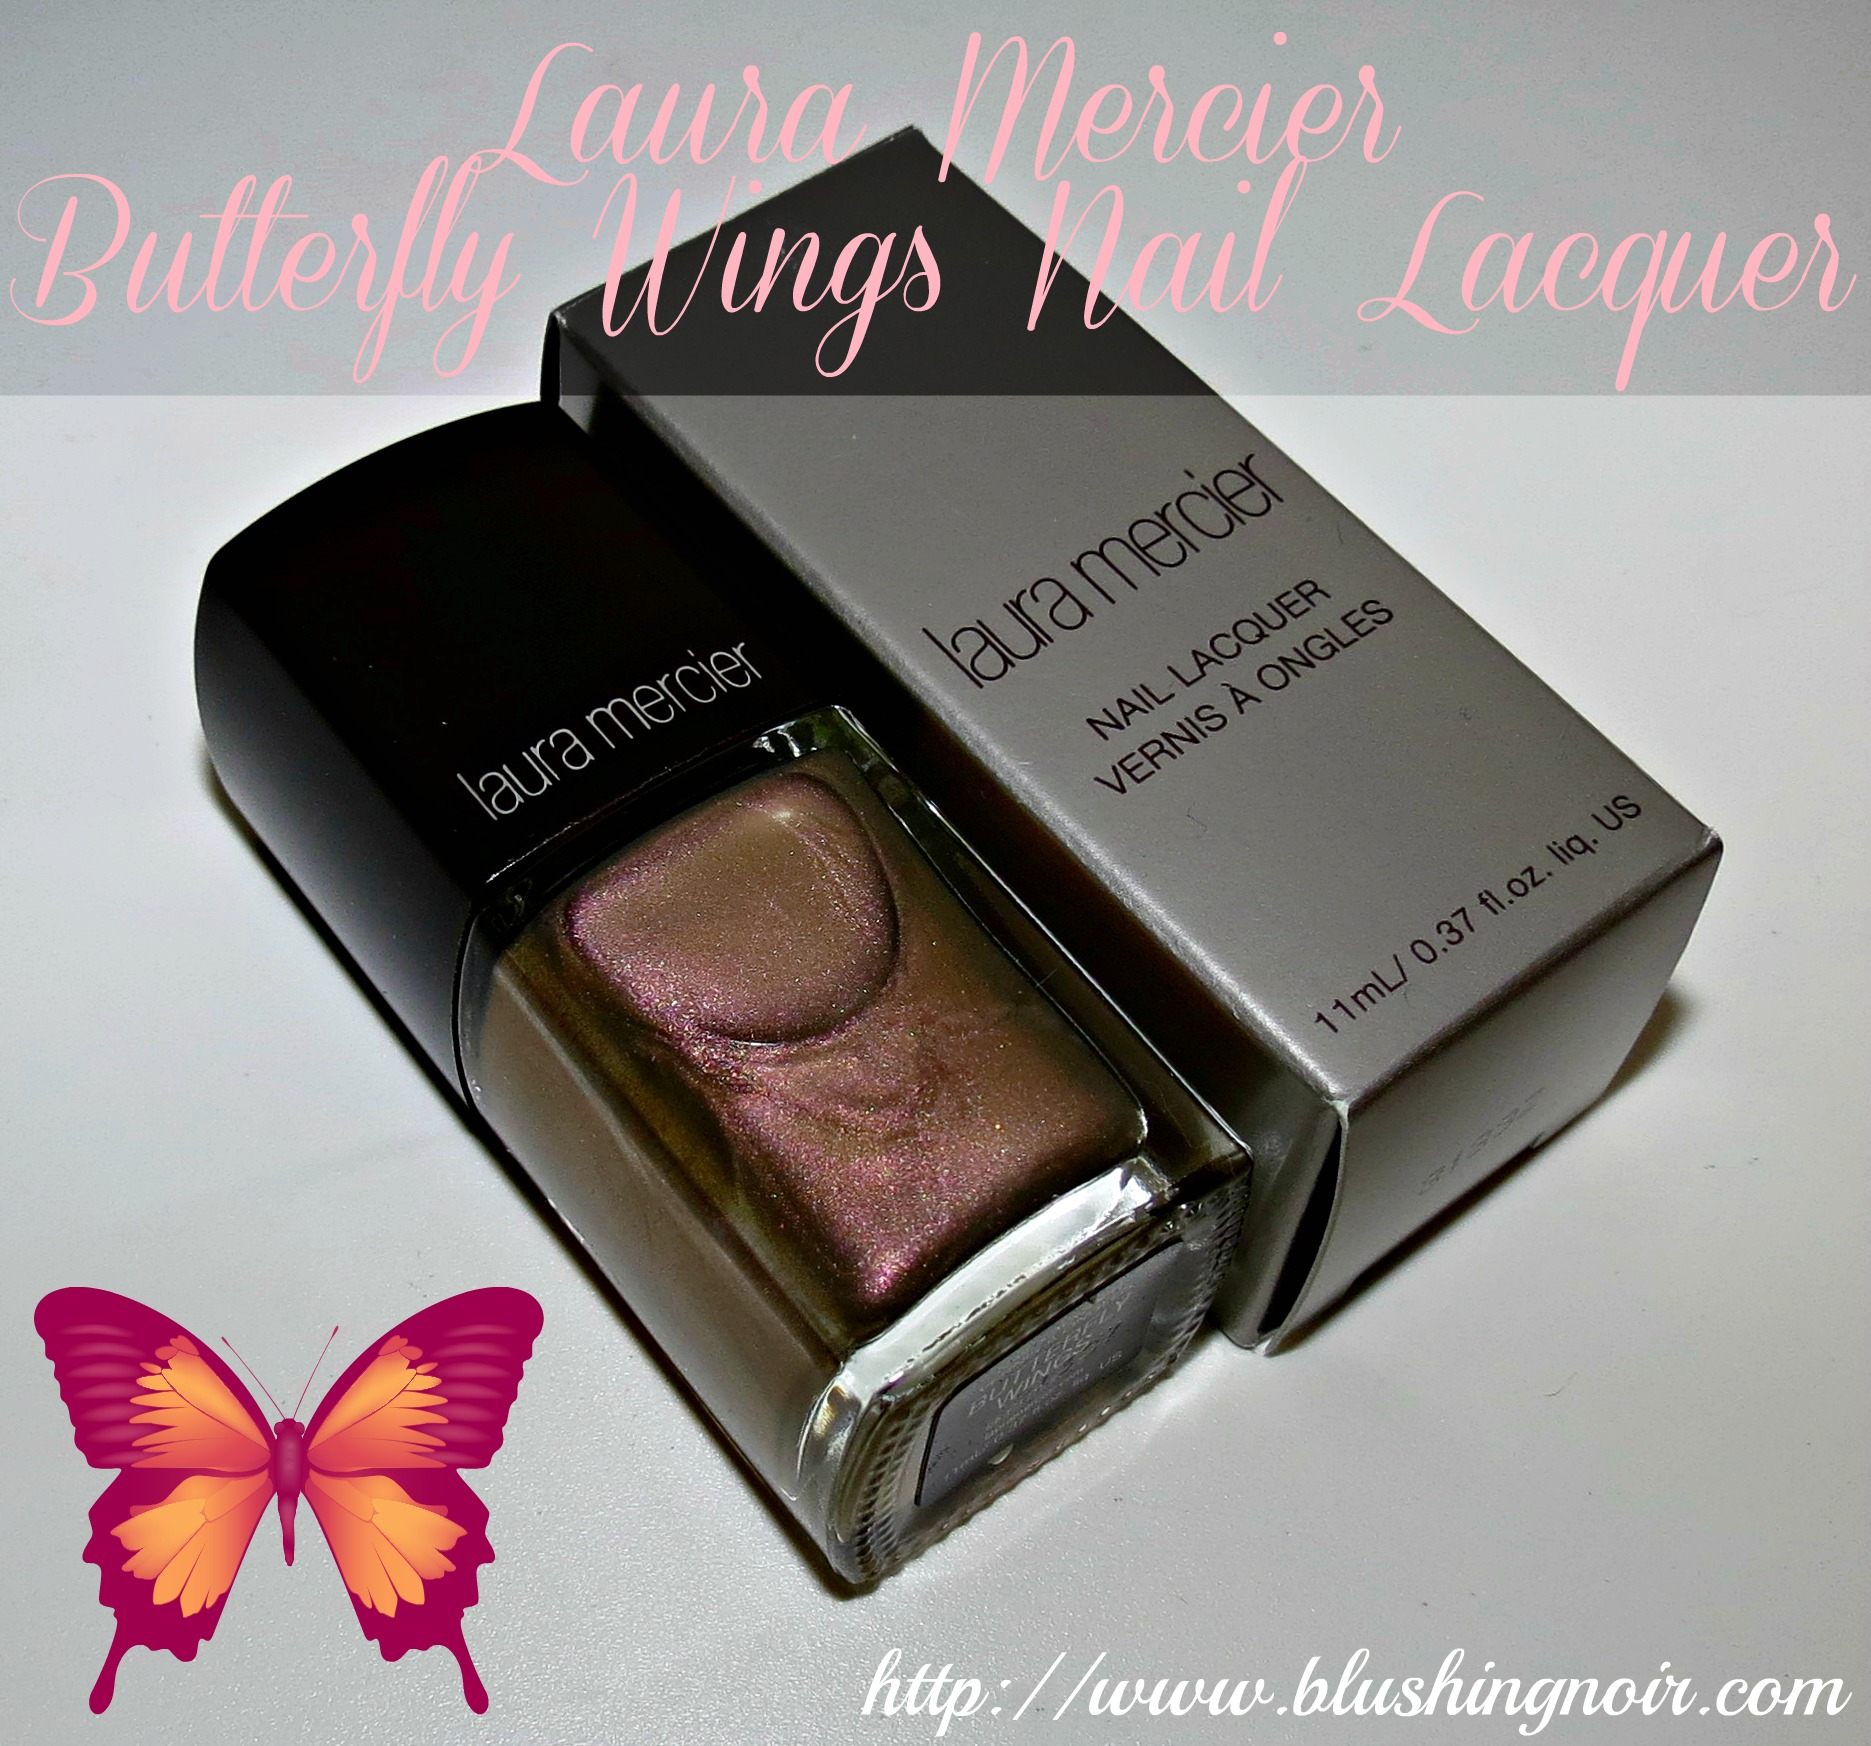 Laura Lacquer Nail Polish: Laura Mercier BUTTERFLY WINGS Nail Lacquer Swatches